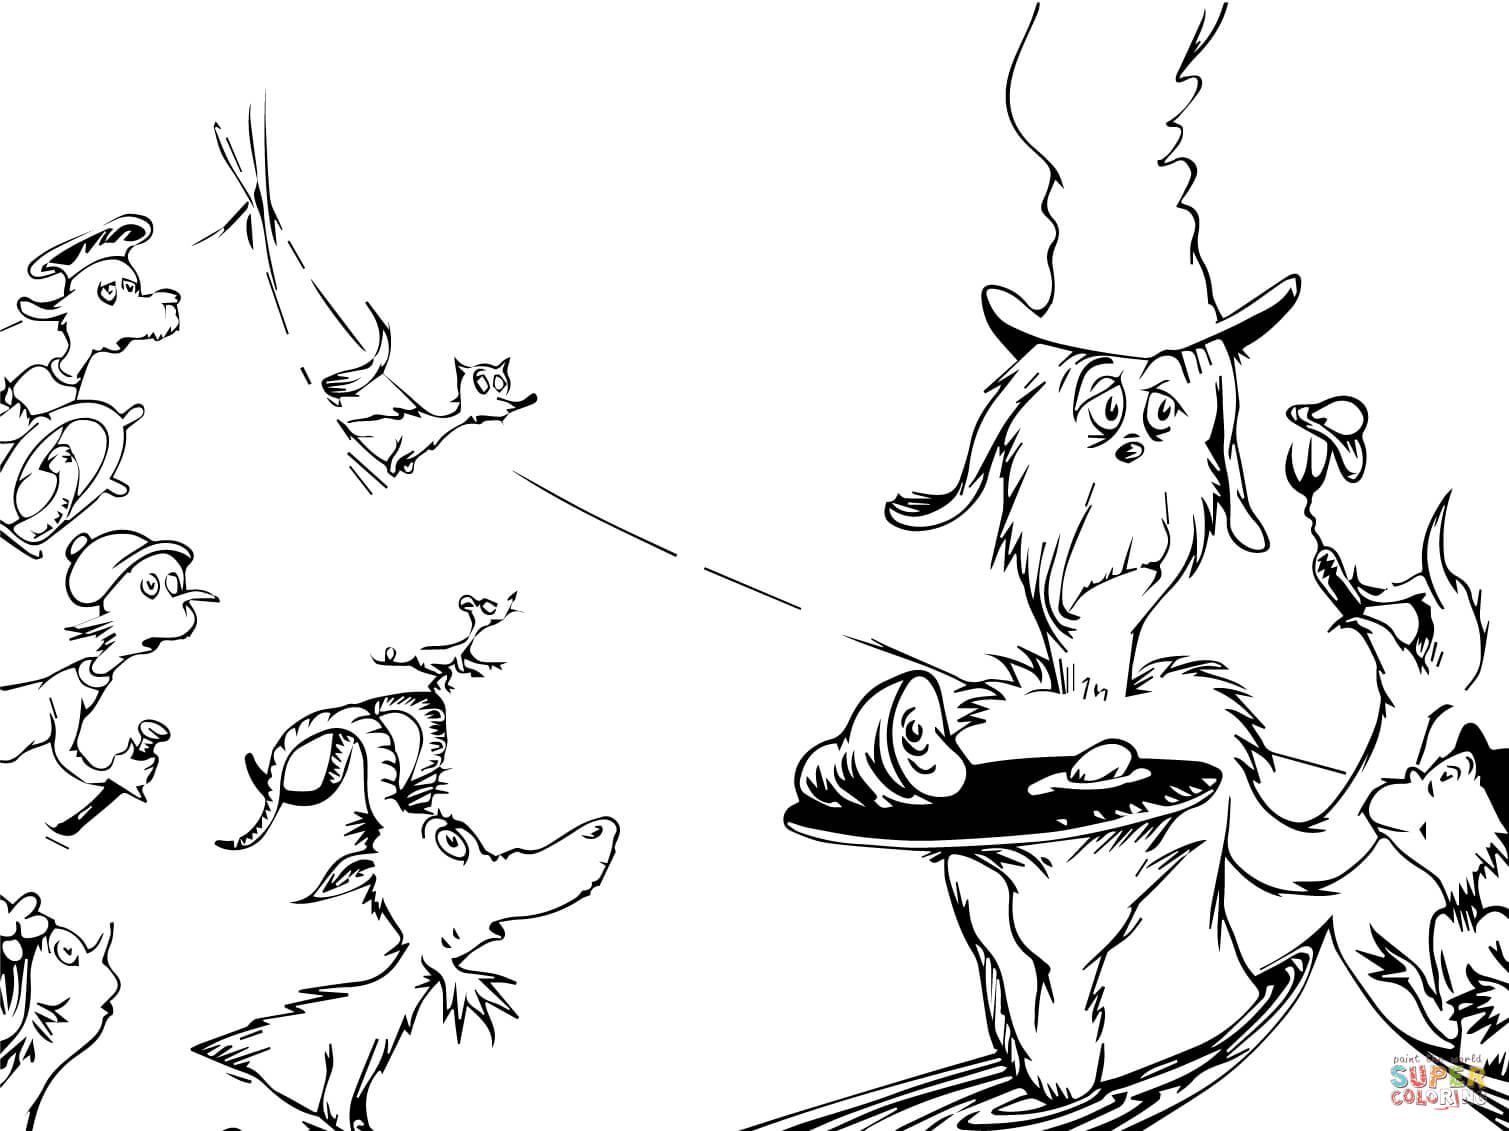 dr seuss coloring pages green eggs and ham dr seuss green eggs and ham coloring pages dont line them ham dr seuss and eggs green coloring pages